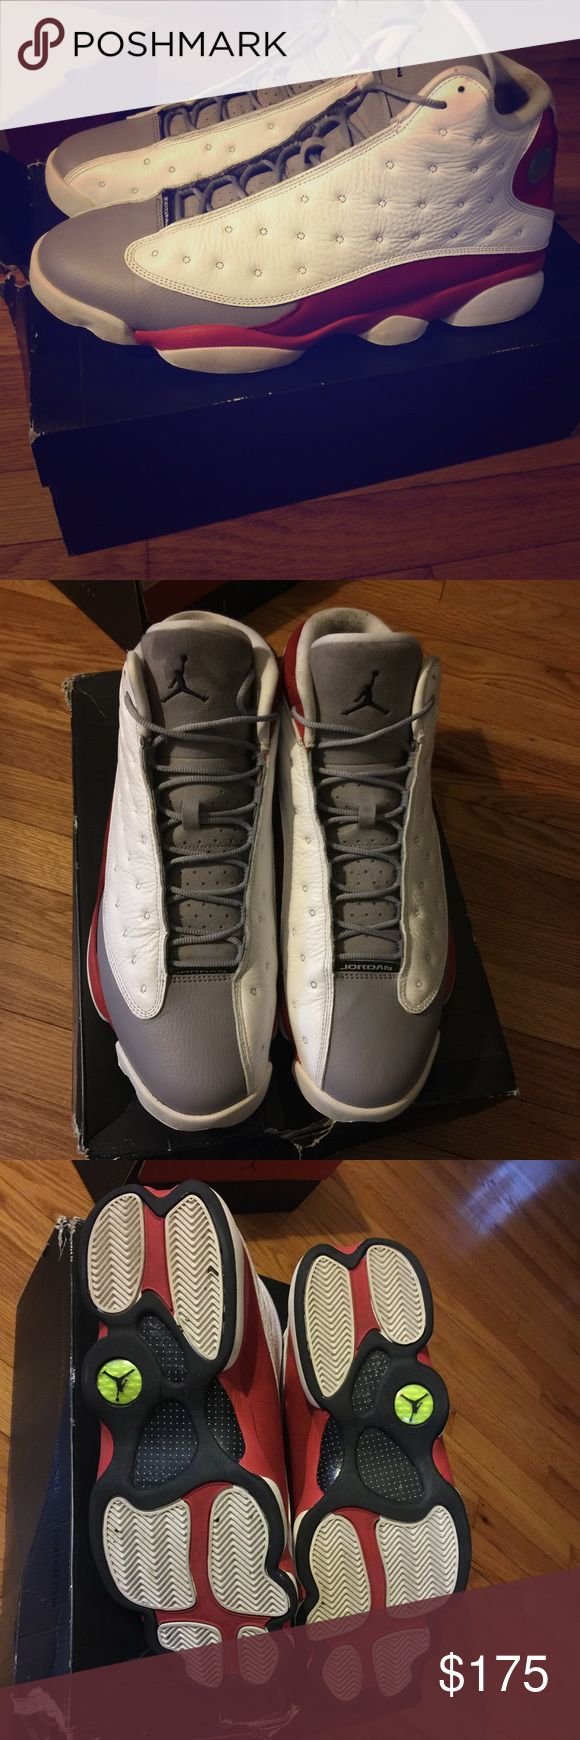 Retro Jordan 13 Slightly worn retro 13 jordans size 14 Jordan Shoes Sneakers